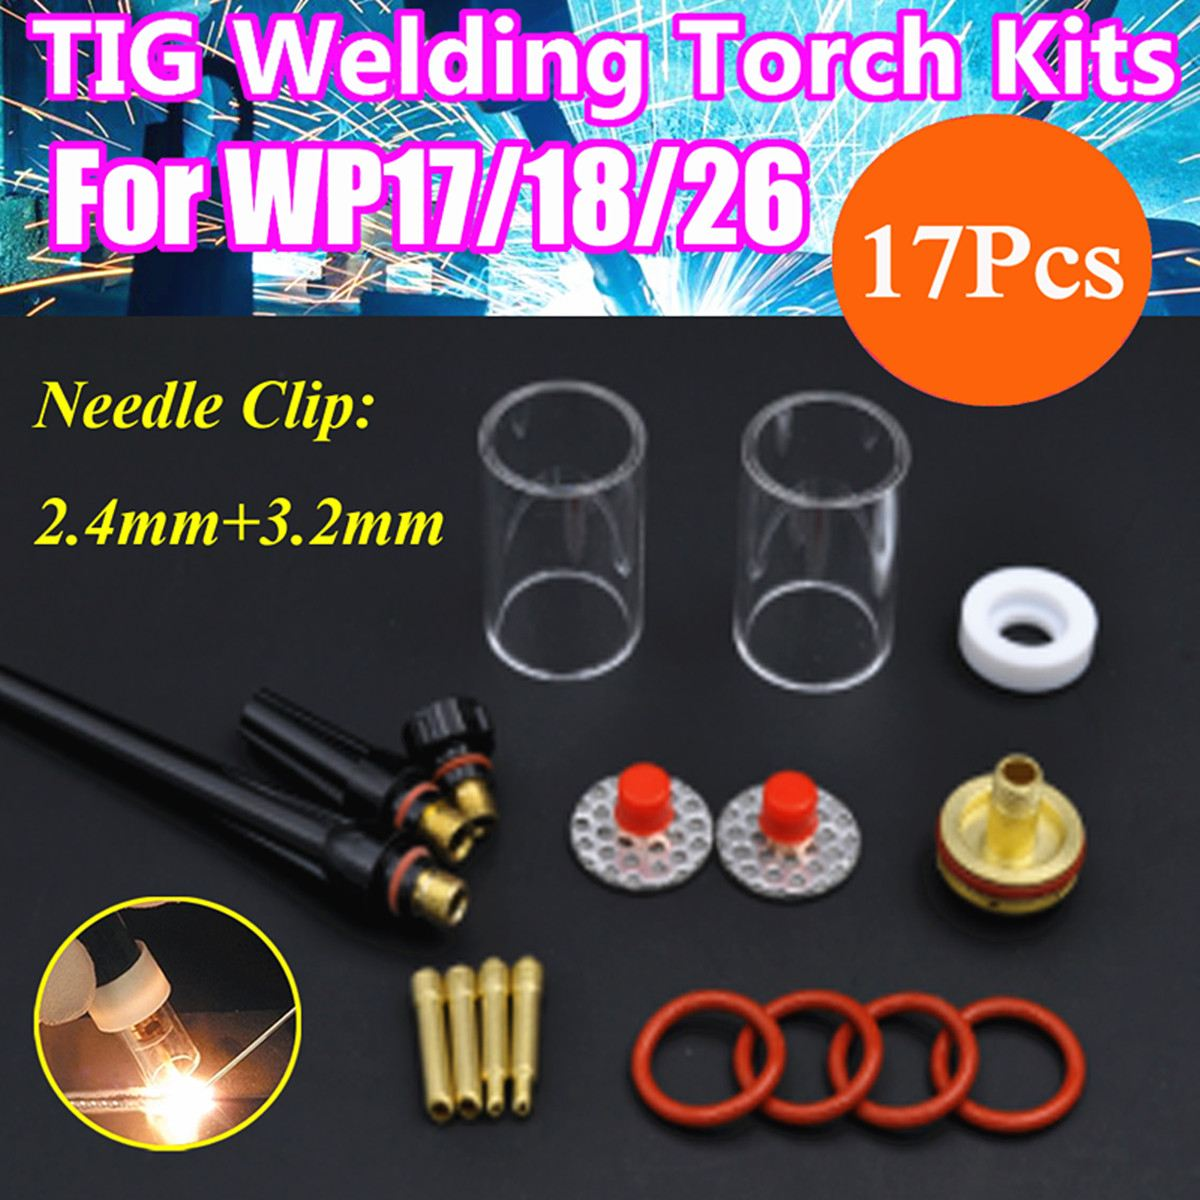 17PCS TIG Welding Torch Gas Lens Pyrex Glass Cup Stubby Collet FOR WP-17/18/26 Series Welding Accessories